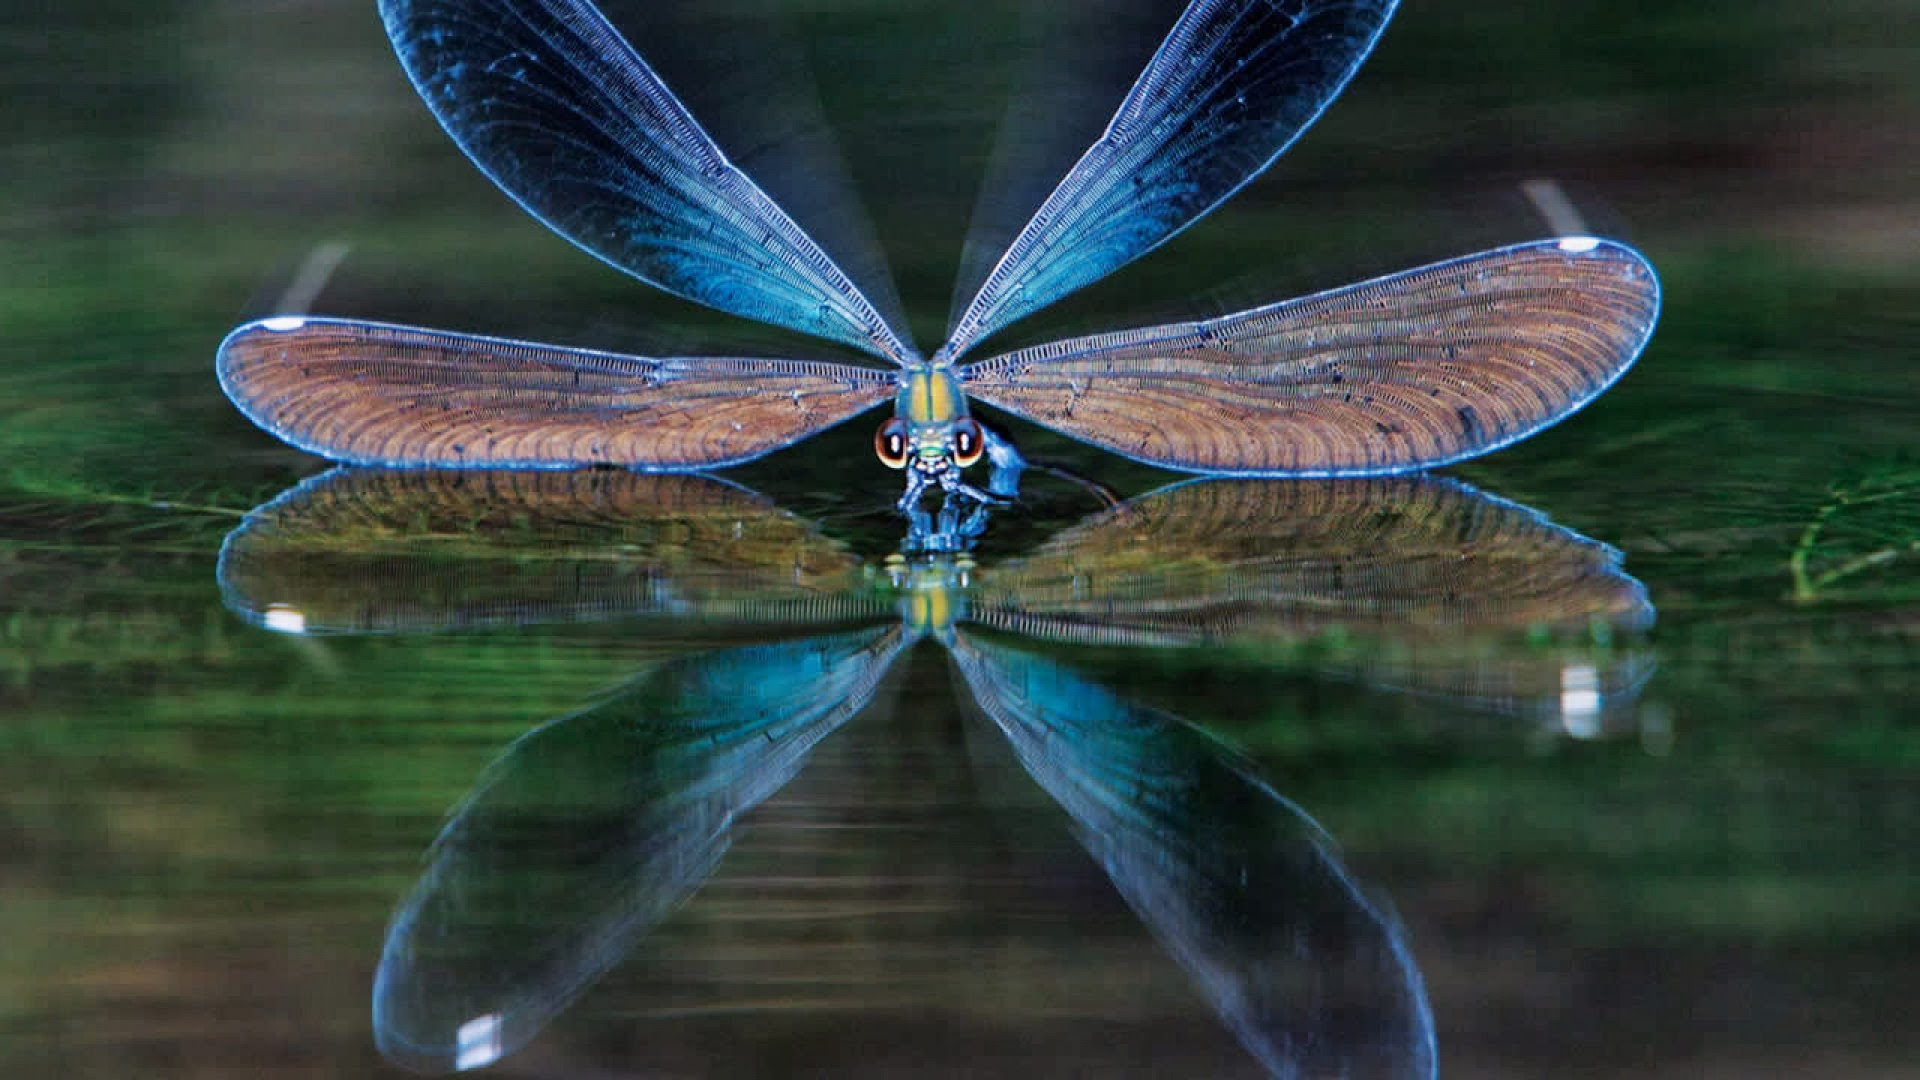 animals wild Insects Others dragonfly blue wallpaper 1920x1080